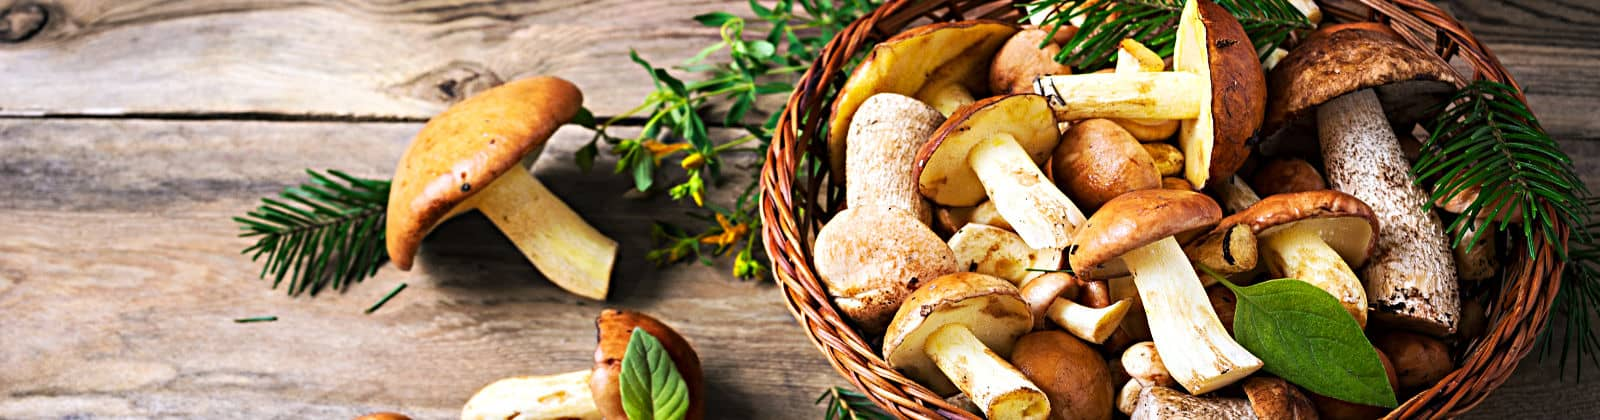 fricassee de champignons sauvages